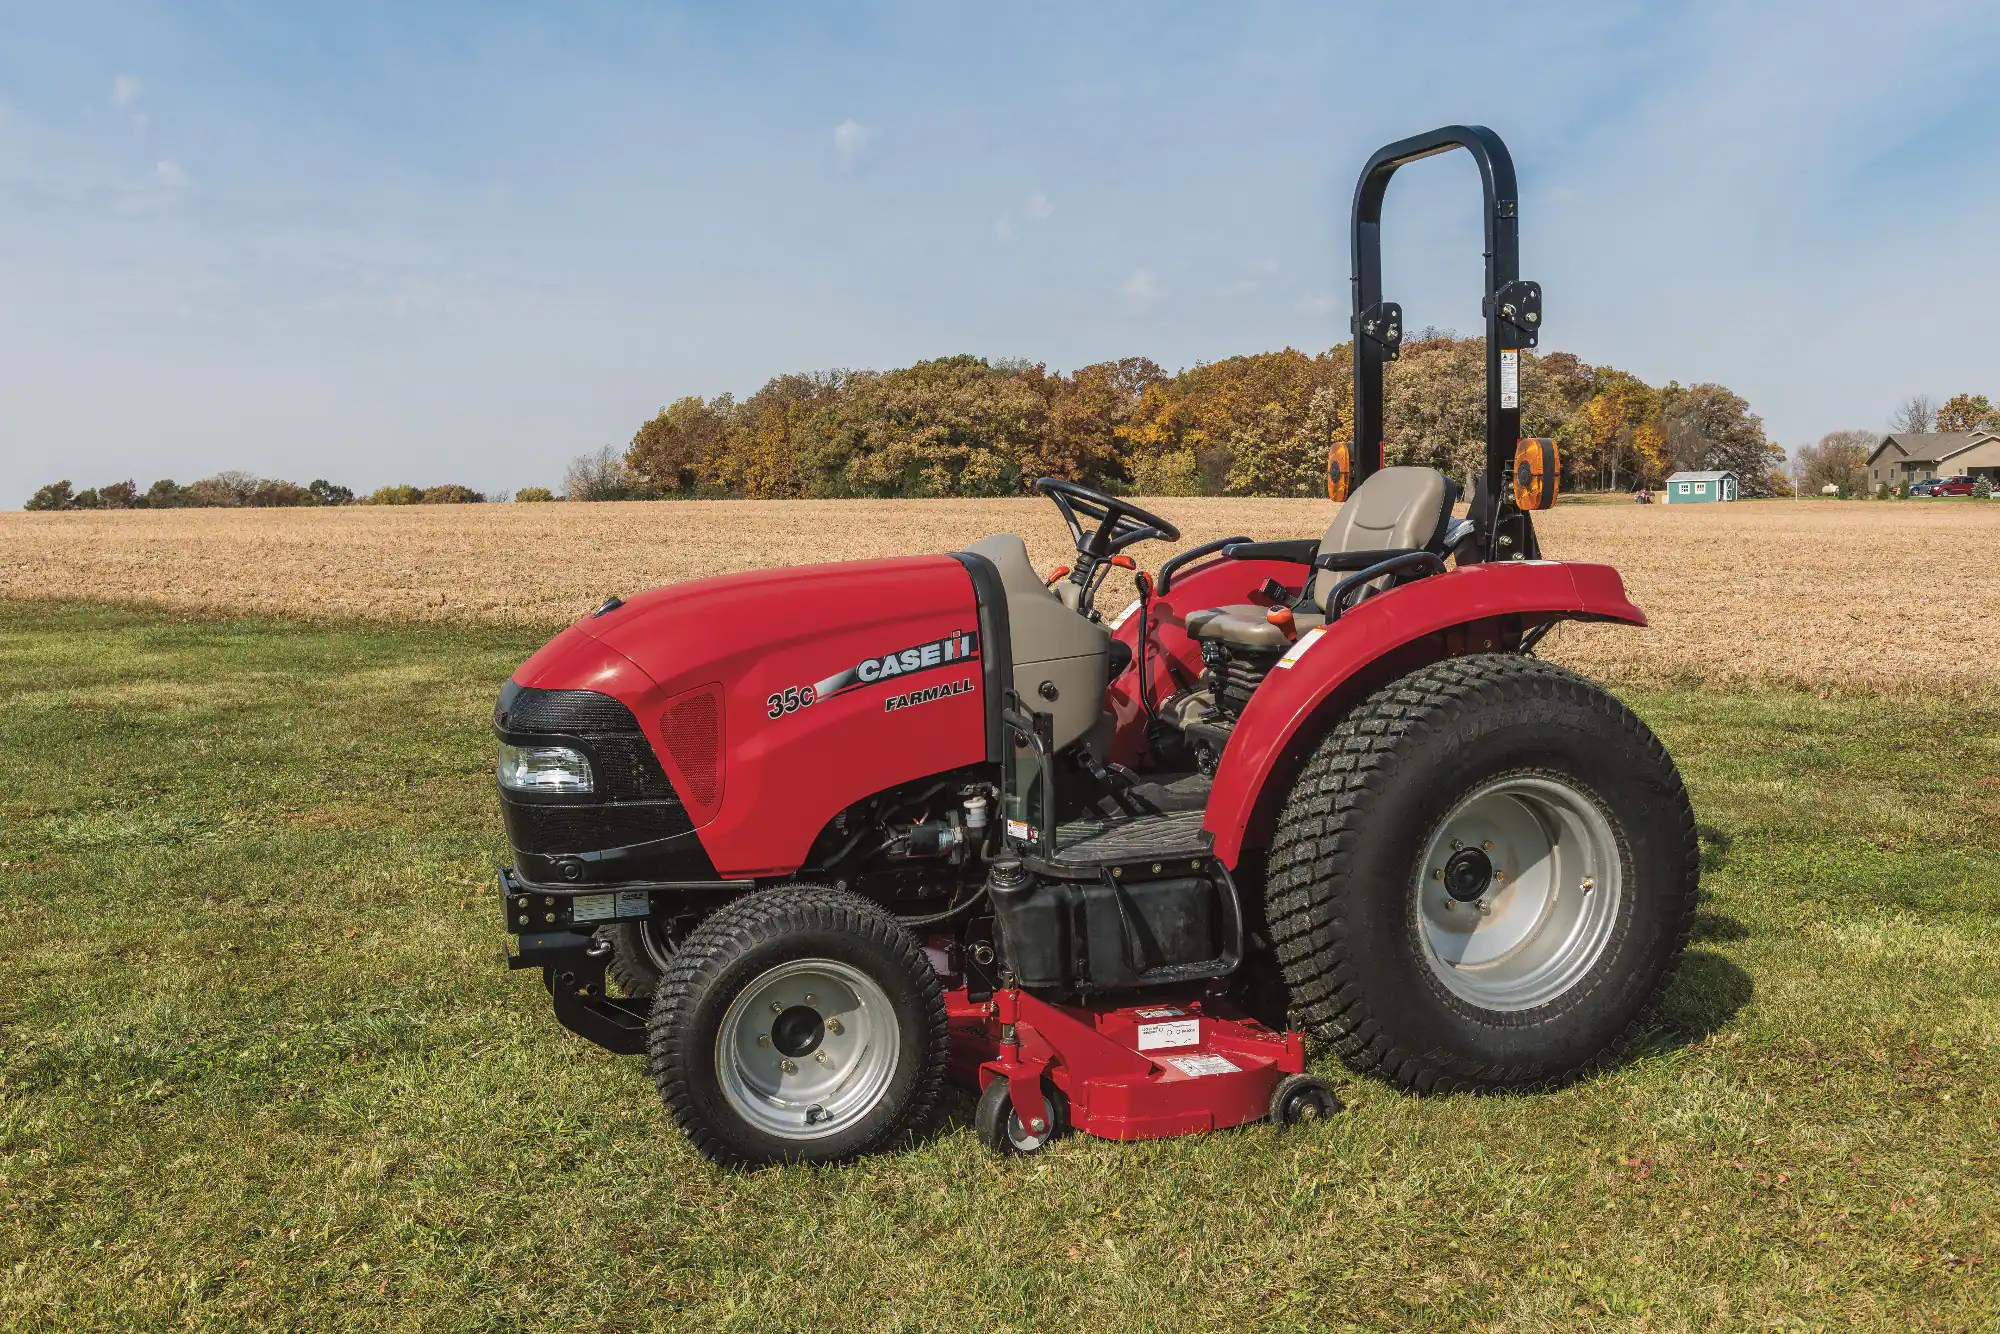 compact farmall c series compact tractors case ih farmall c belly mower farmall c transmission diagram [ 2000 x 1334 Pixel ]